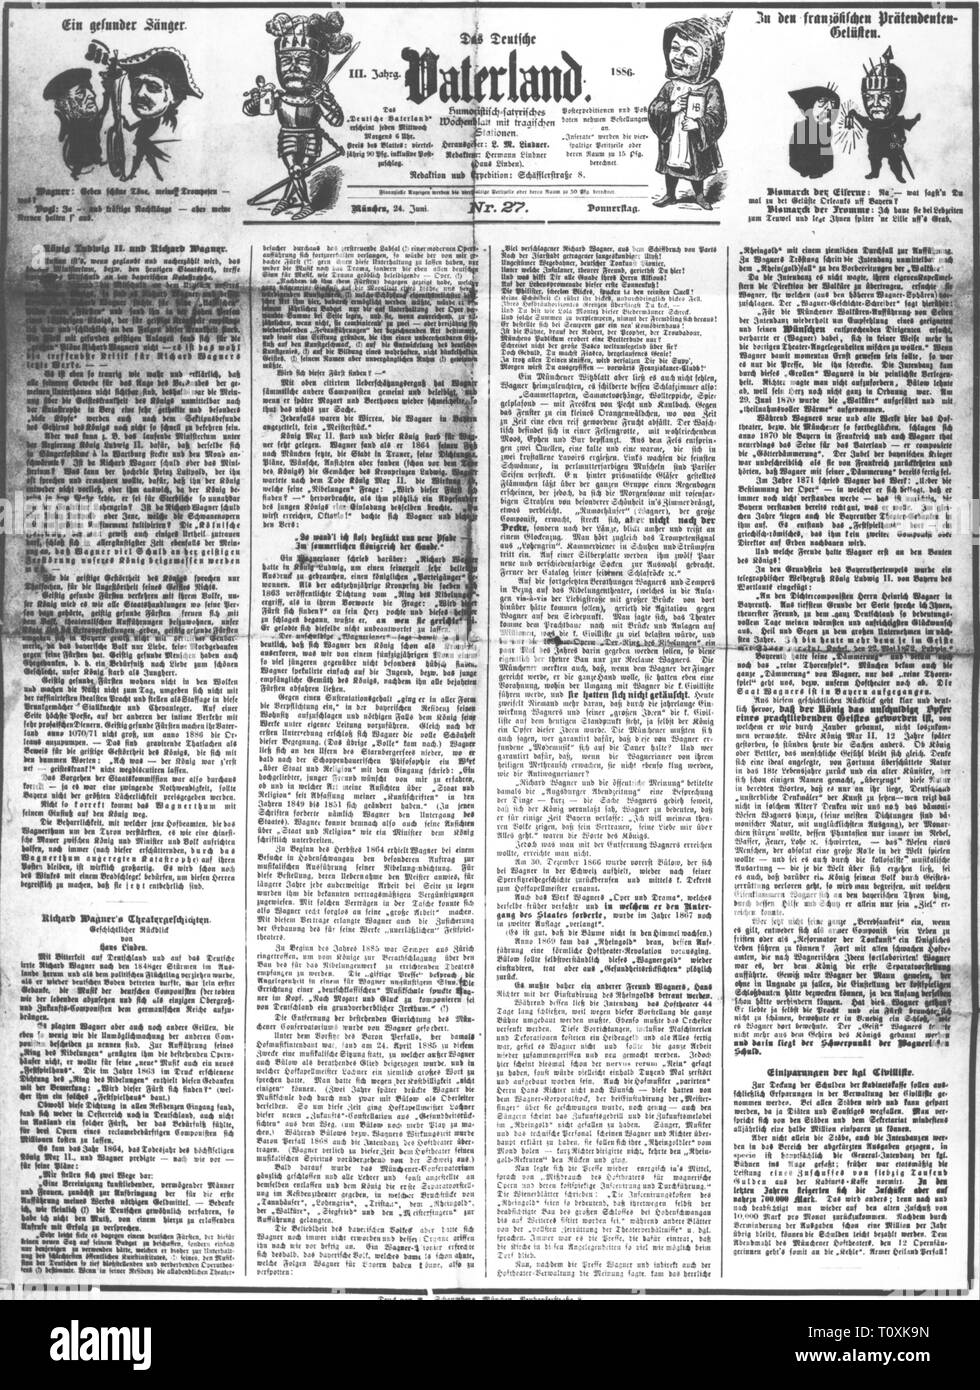 press / media, magazines, 'Das Deutsche Vaterland' (The German Fatherland), front page, editor: L.M. Lindner, IIIrd volume, number 27, Munich, 24.6.1886, Artist's Copyright has not to be cleared - Stock Image